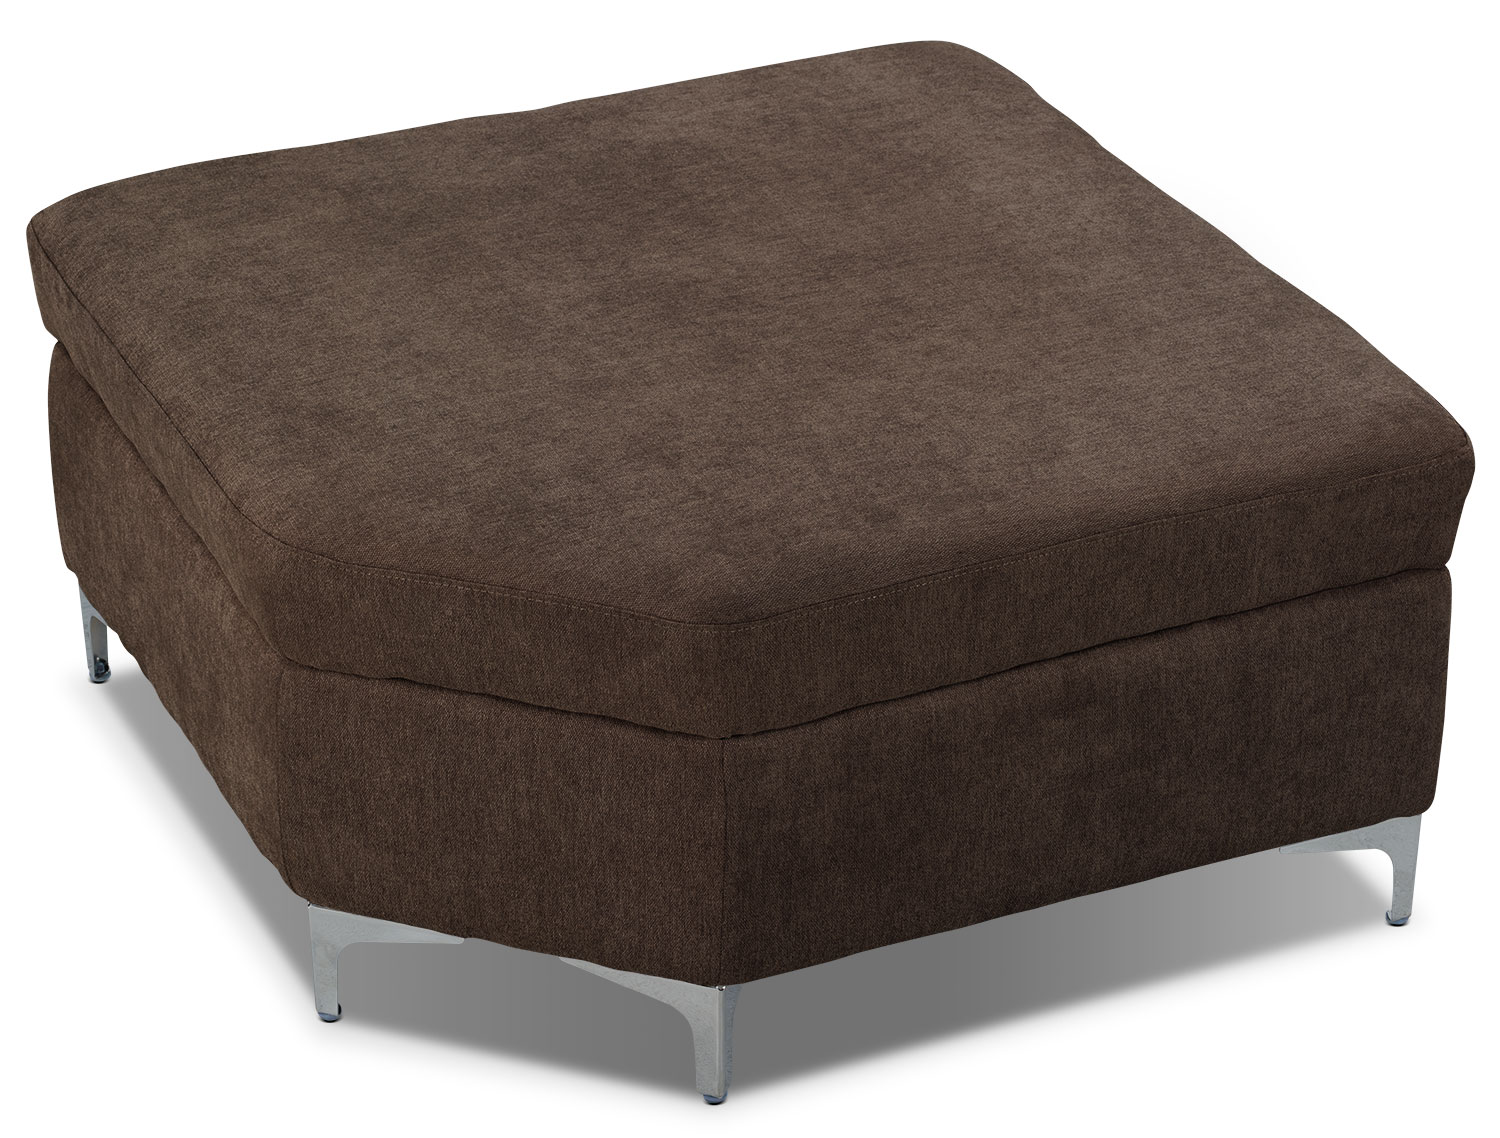 London linen look fabric storage ottoman chocolate the for Storage ottomans fabric